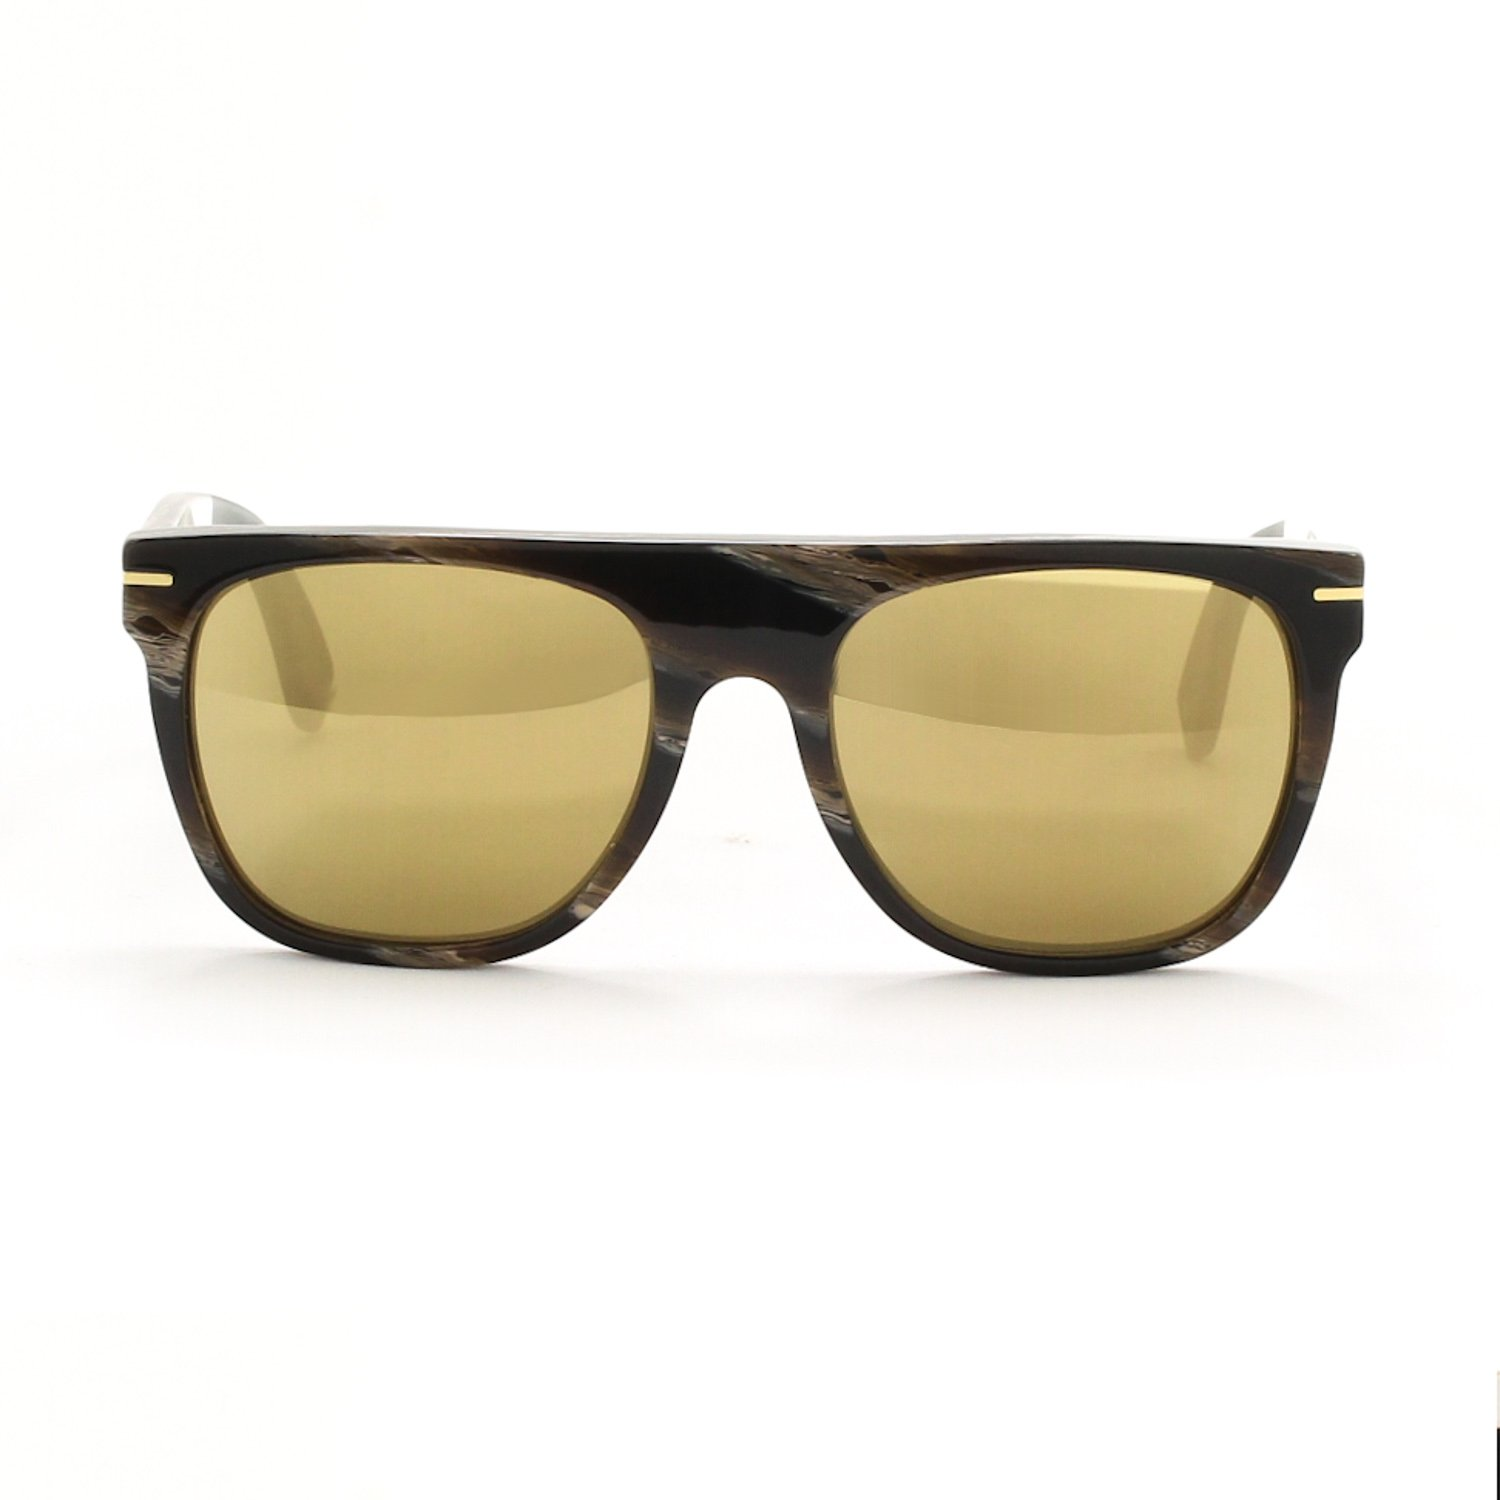 RetroSuperFuture Flat Top Sunglasses | Motorpsycho by RETROSUPERFUTURE (Image #8)